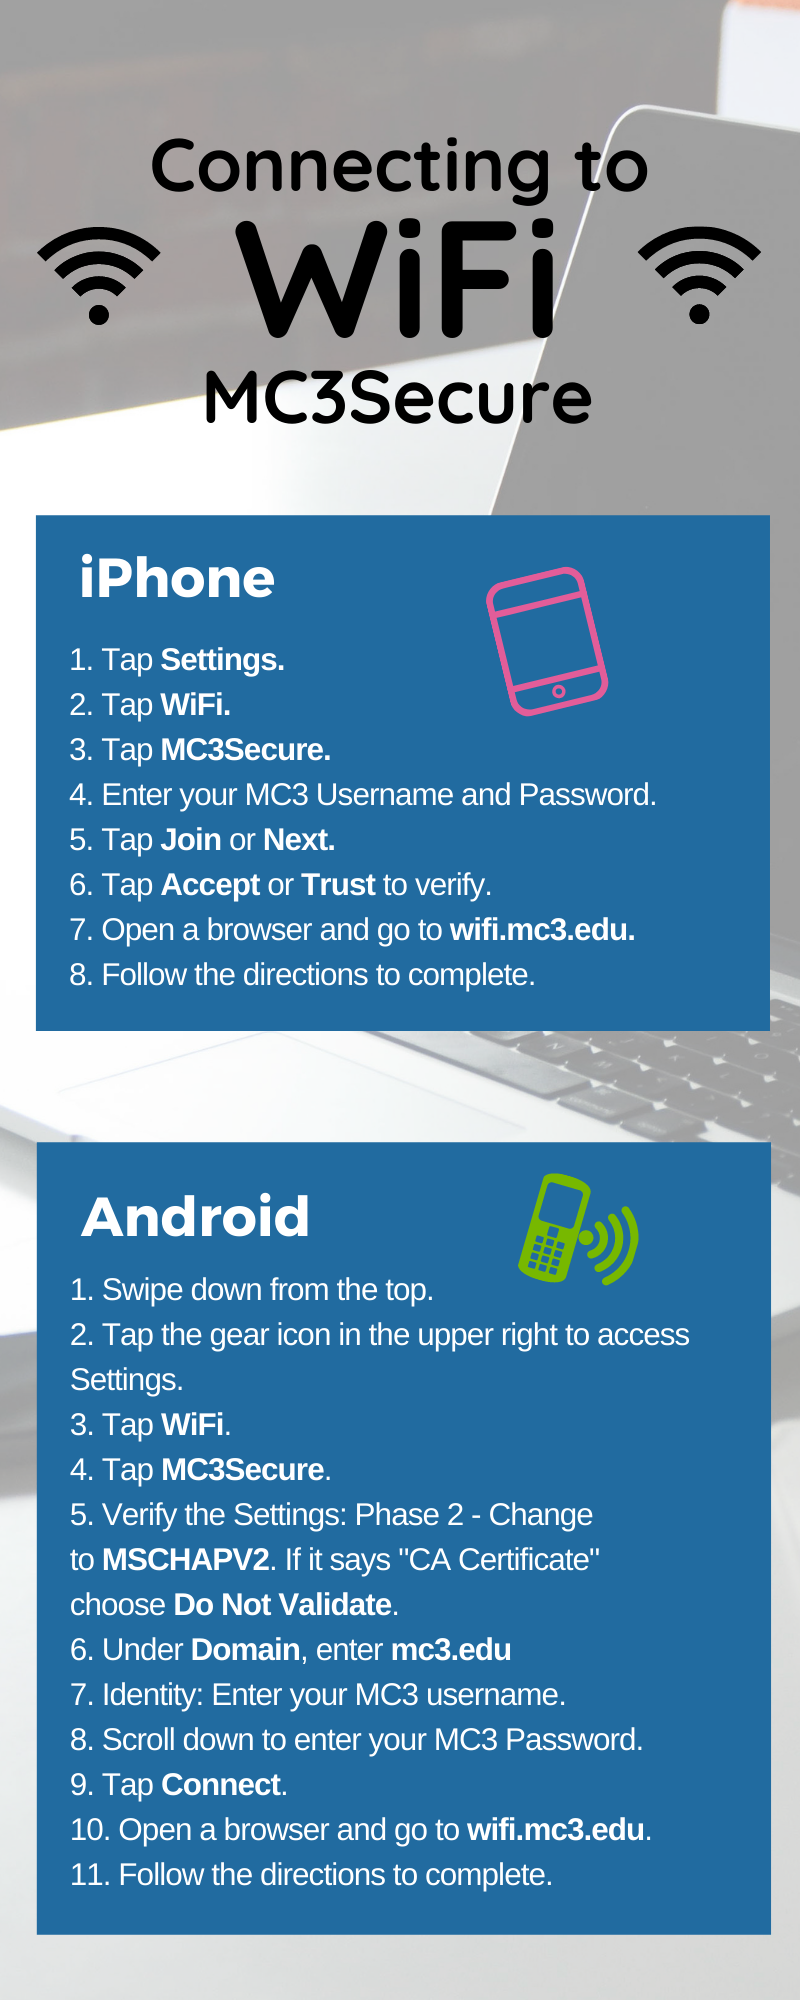 """Title: Connecting to Wifi MC3Secure   IPhone   1. Tap Settings.  2. Tap WiFi.  3. Tap MC3Secure.  4. Enter your MC3 Username and Password.  5. Tap Join or Next.  6. Tap Accept or Trust to verify.  7. Open a browser and go to wifi.mc3.edu.  8. Follow the directions to complete.   Android   1. Swipe down from the top.  2. Tap the gear icon in the upper right to access Settings.  3. Tap WiFi.  4. Tap MC3Secure.  5. Verify the Settings: Phase 2 - Change to MSCHAPV2. If it says """"CA Certificate"""" choose Do Not Validate.  6. Under Domain, enter mc3.edu   7. Identity: Enter your MC3 username.  8. Scroll down to enter your MC3 Password.  9. Tap Connect.  10. Open a browser and go to wifi.mc3.edu.  11. Follow the directions to complete."""